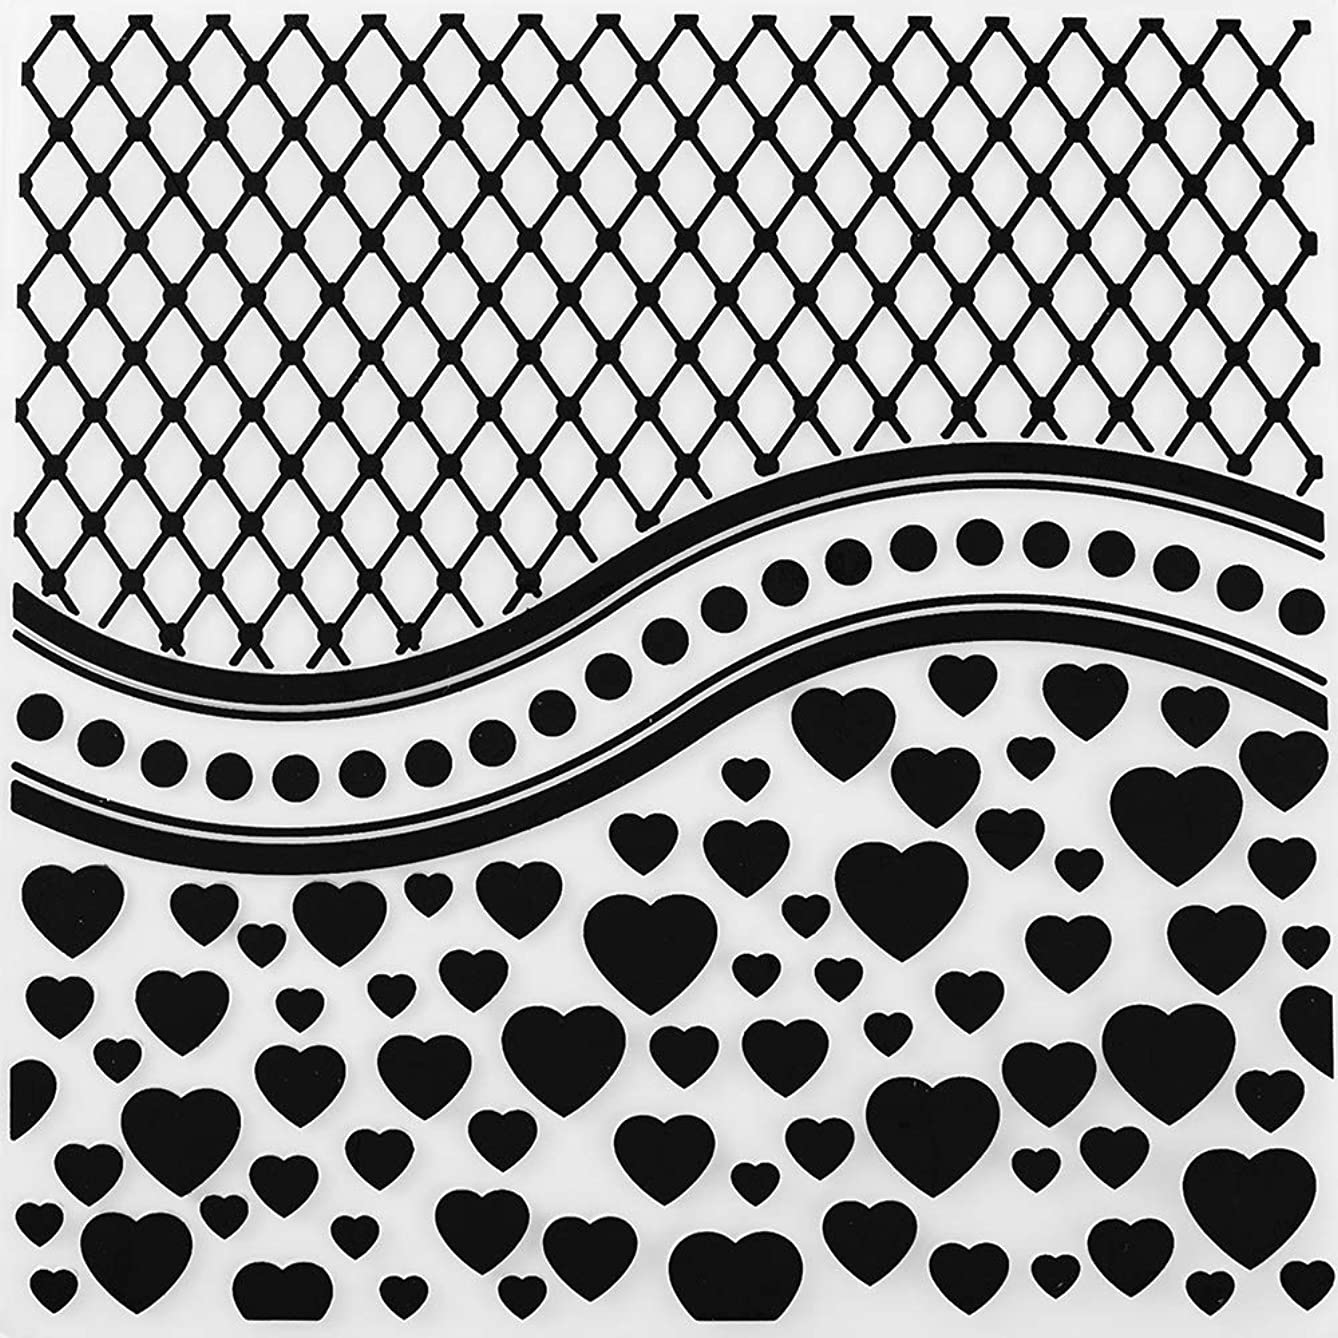 MaGuo Love Network Plastic Embossing Folder Template for Card Making Scrapbooking DIY Crafts m526415917890890